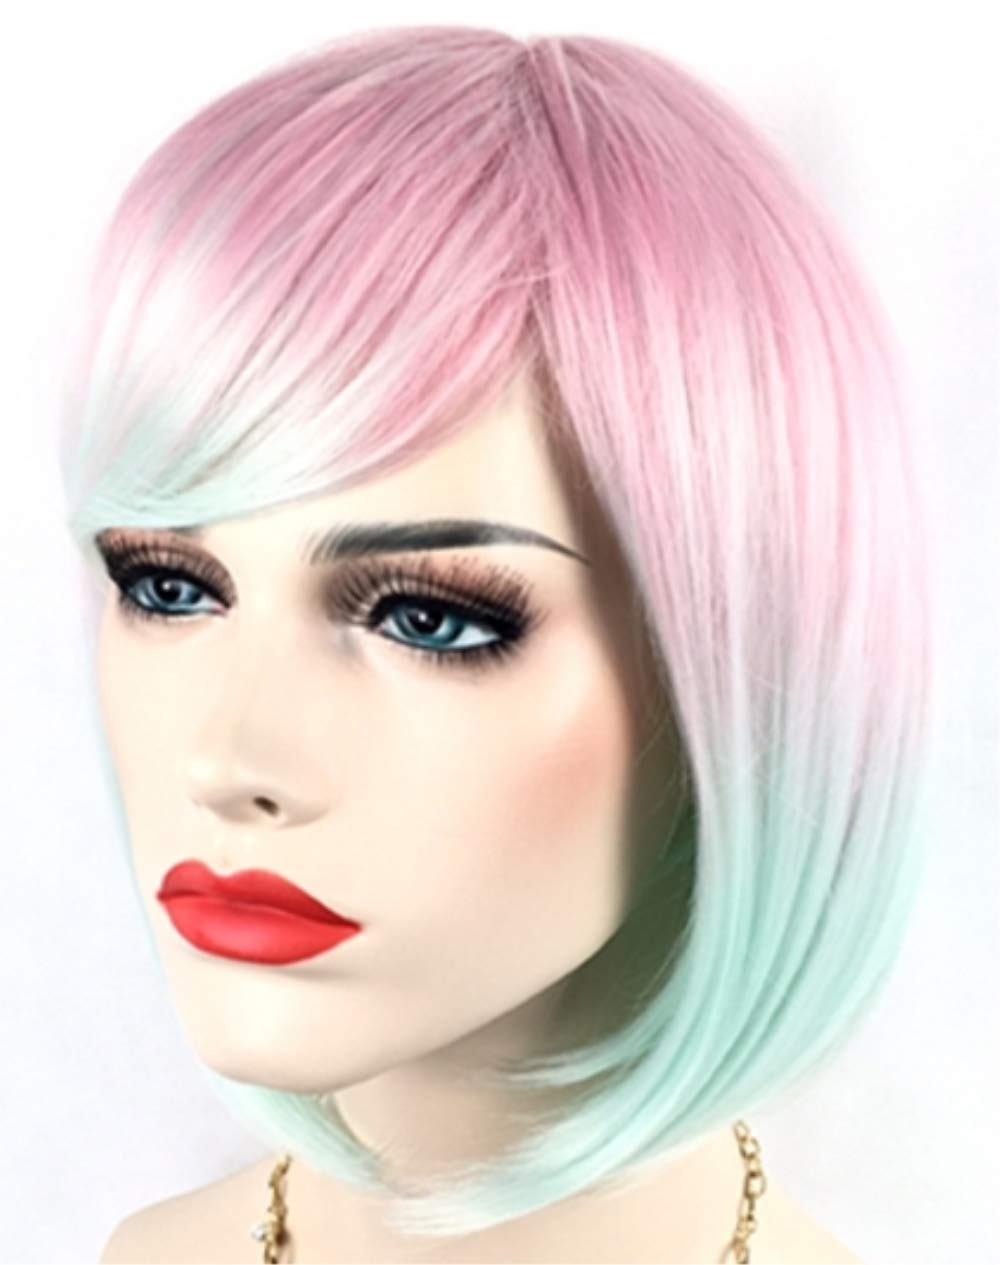 Amazon.com: Cute Sexy Multi-colored Bob Wig Short Hair & 1 Wig Cap for  Kawaii Anime Cosplay Costume Accessories, for Halloween Christmas Birthday  Theme Party; WIG7D: Beauty